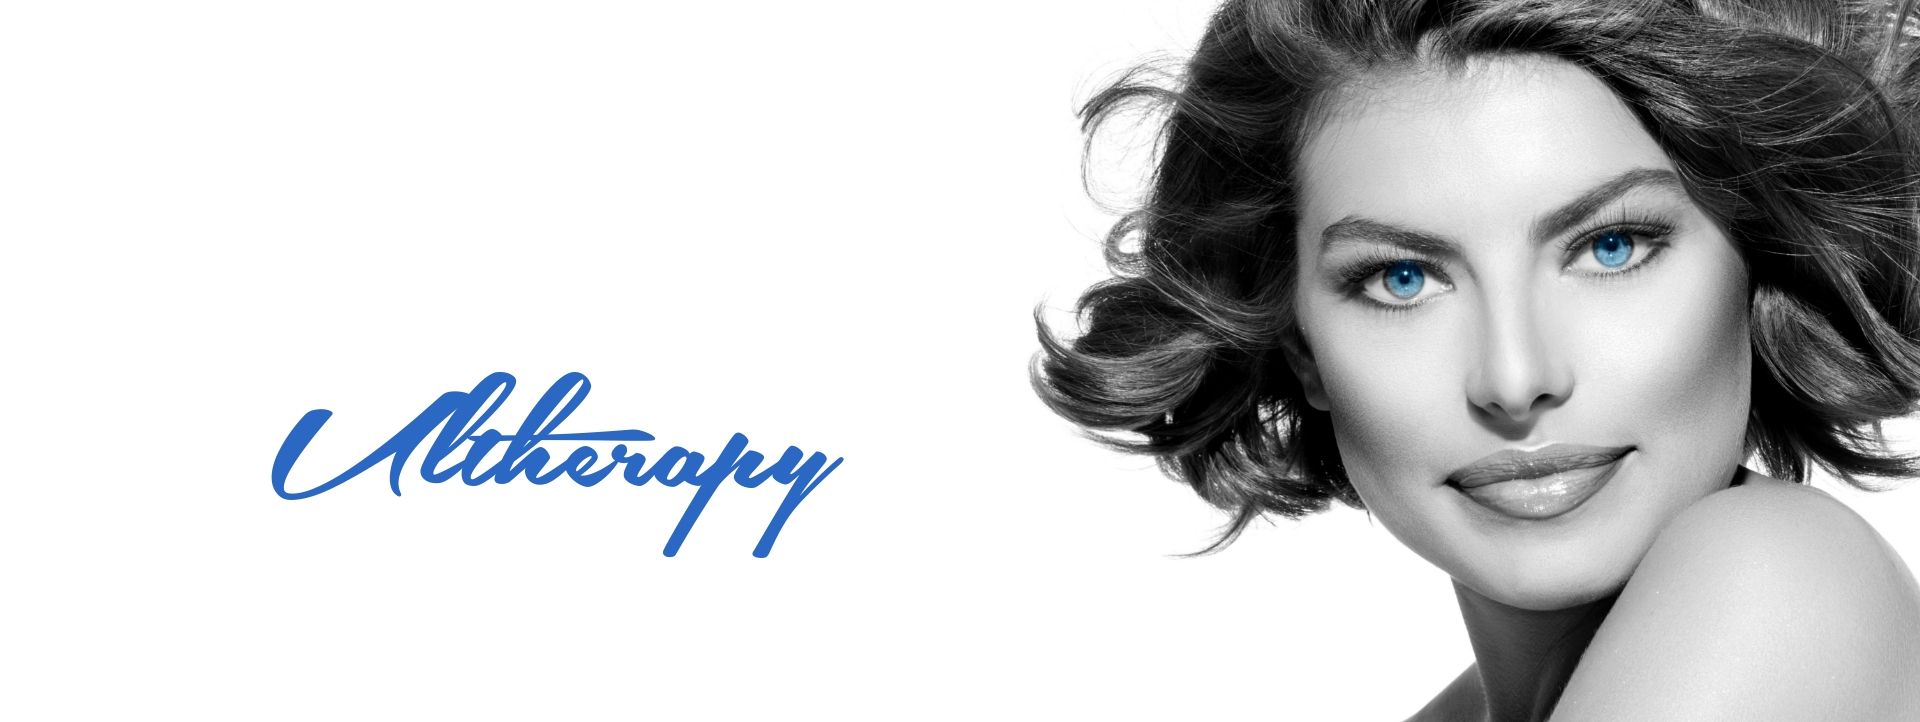 ultherapy new banner